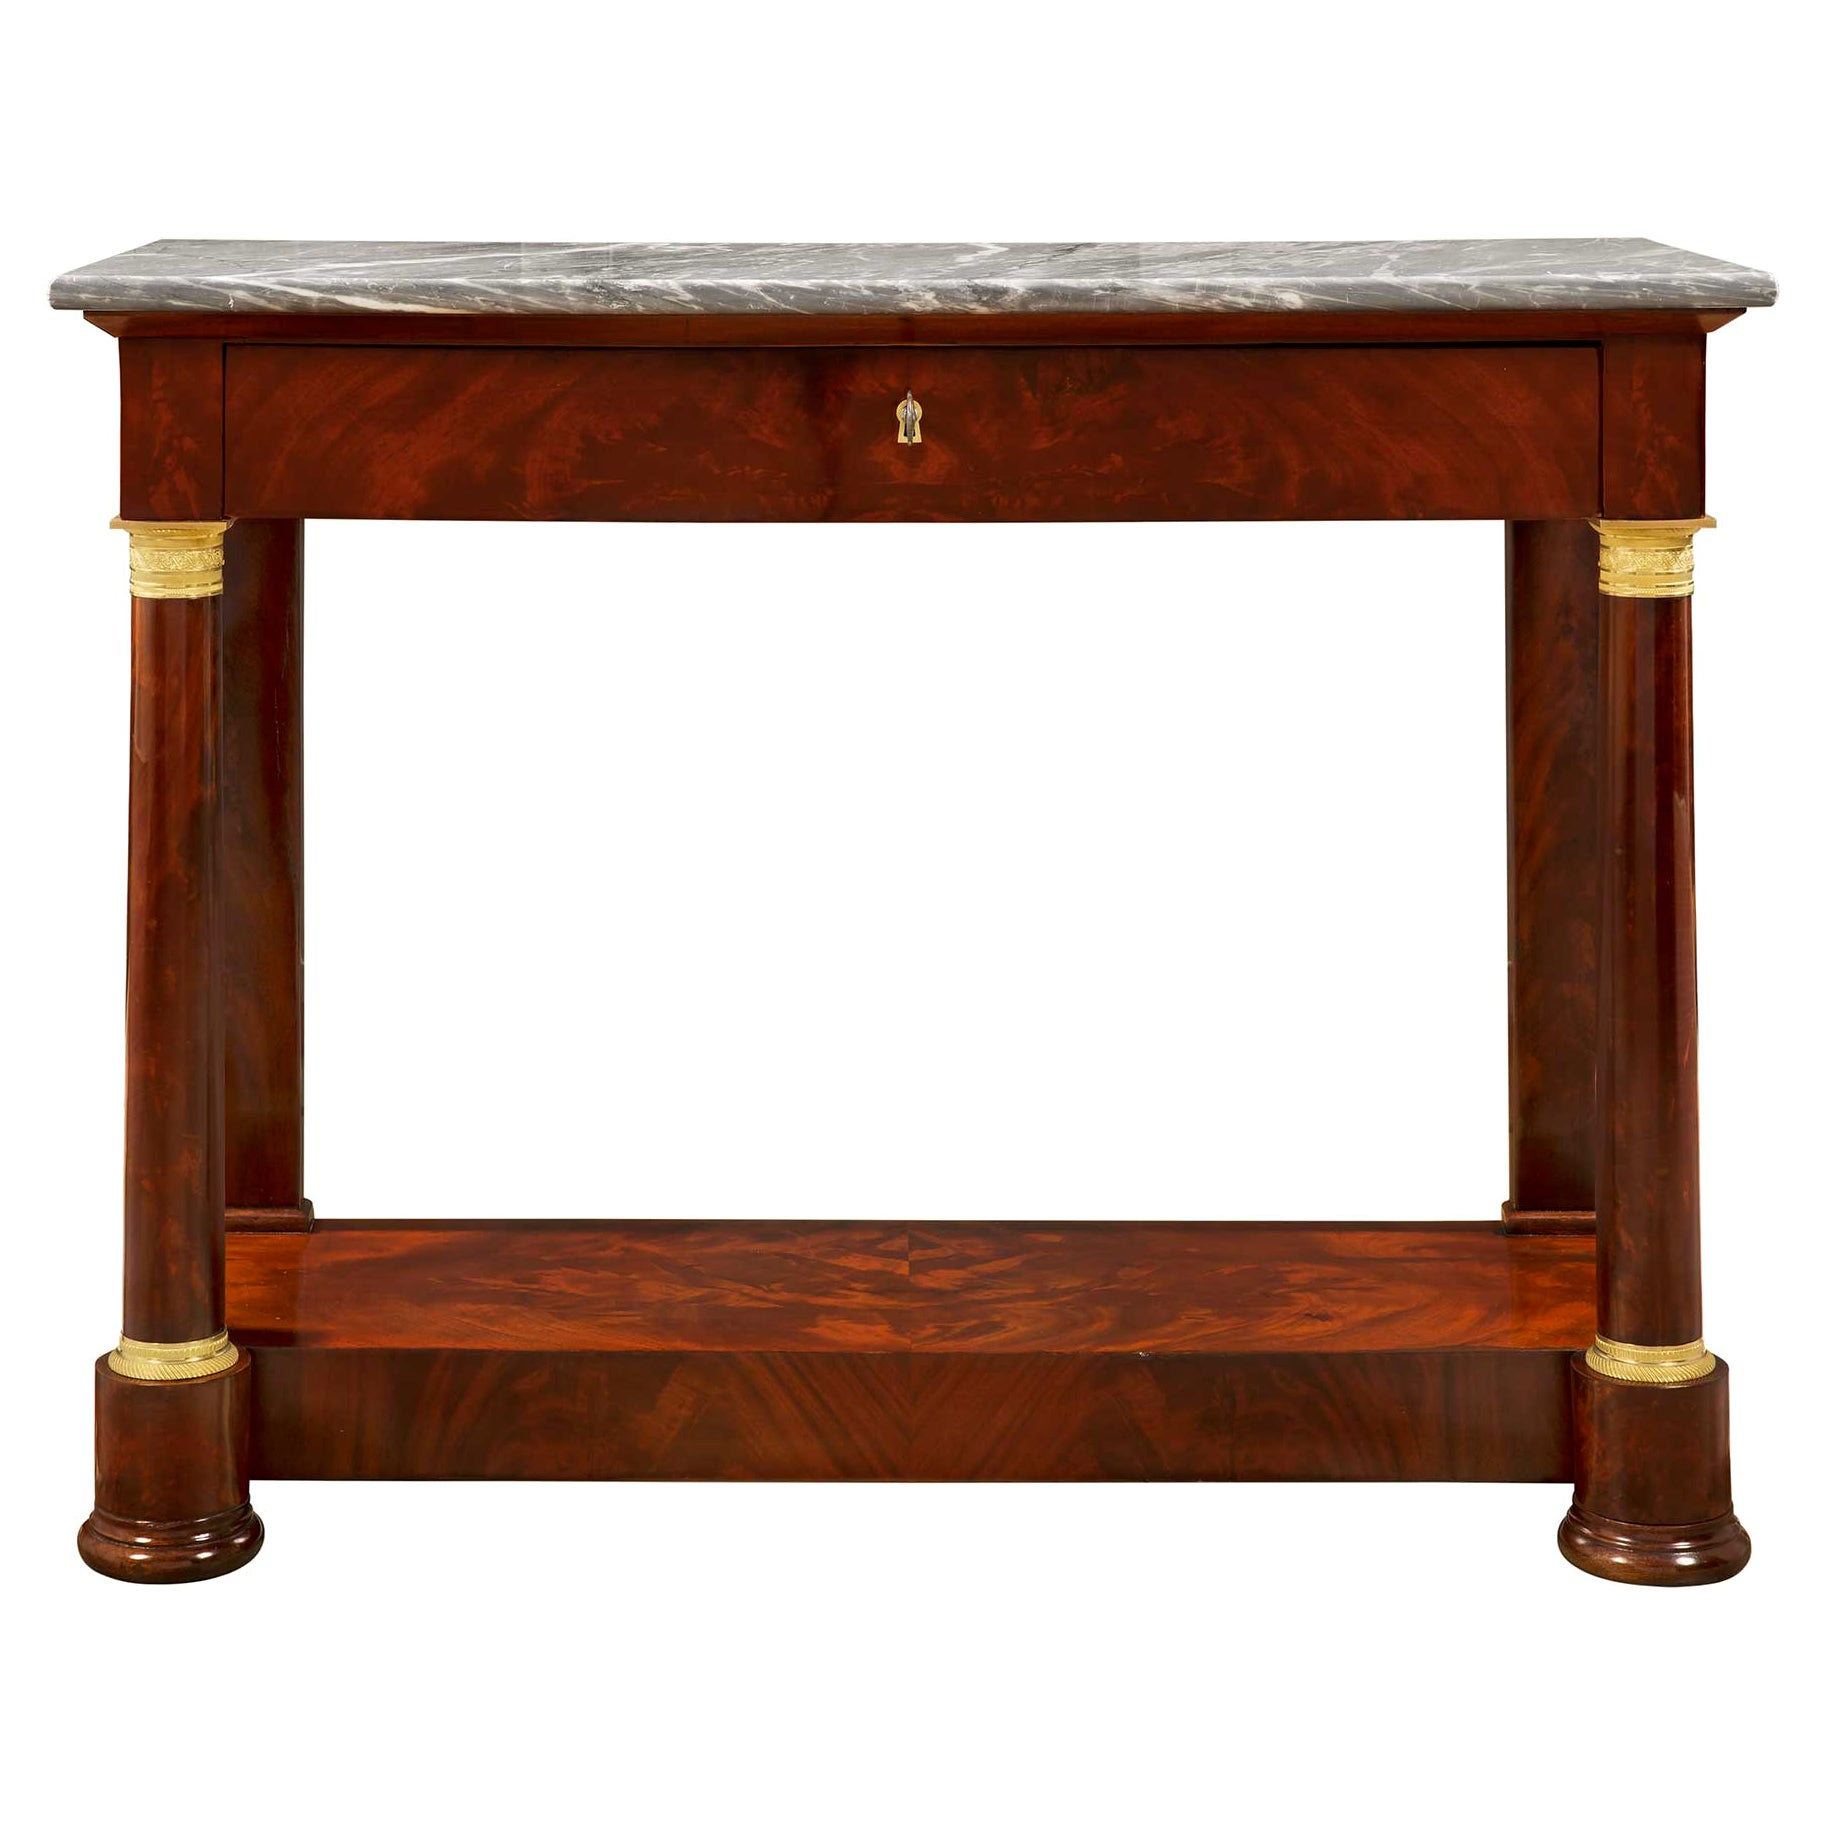 French 19th Century Empire Style Flamed Mahogany, Ormolu and Marble Console